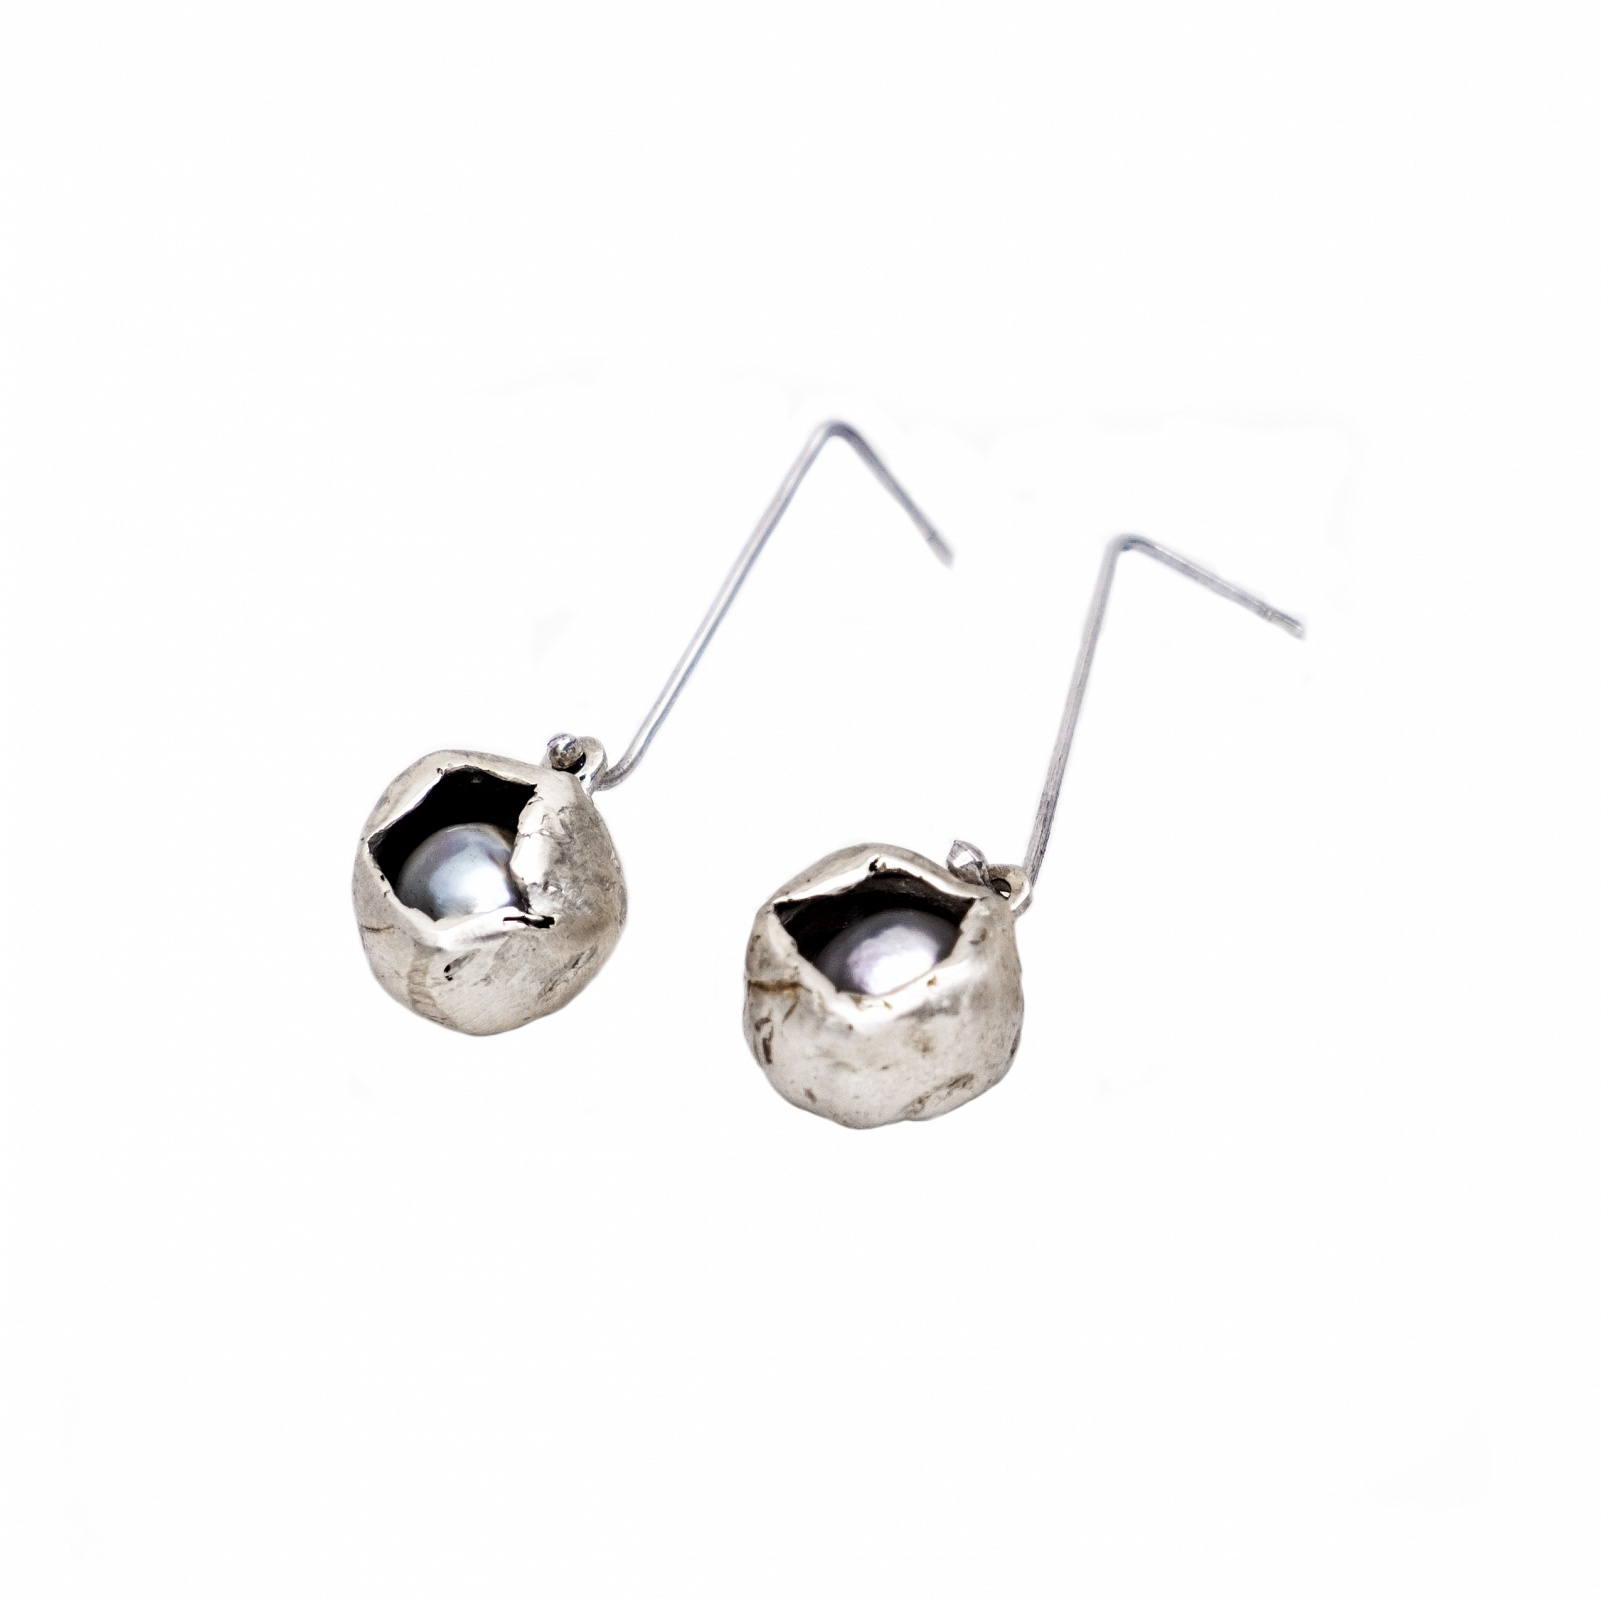 Earrings Perla che Danza Small - €195 